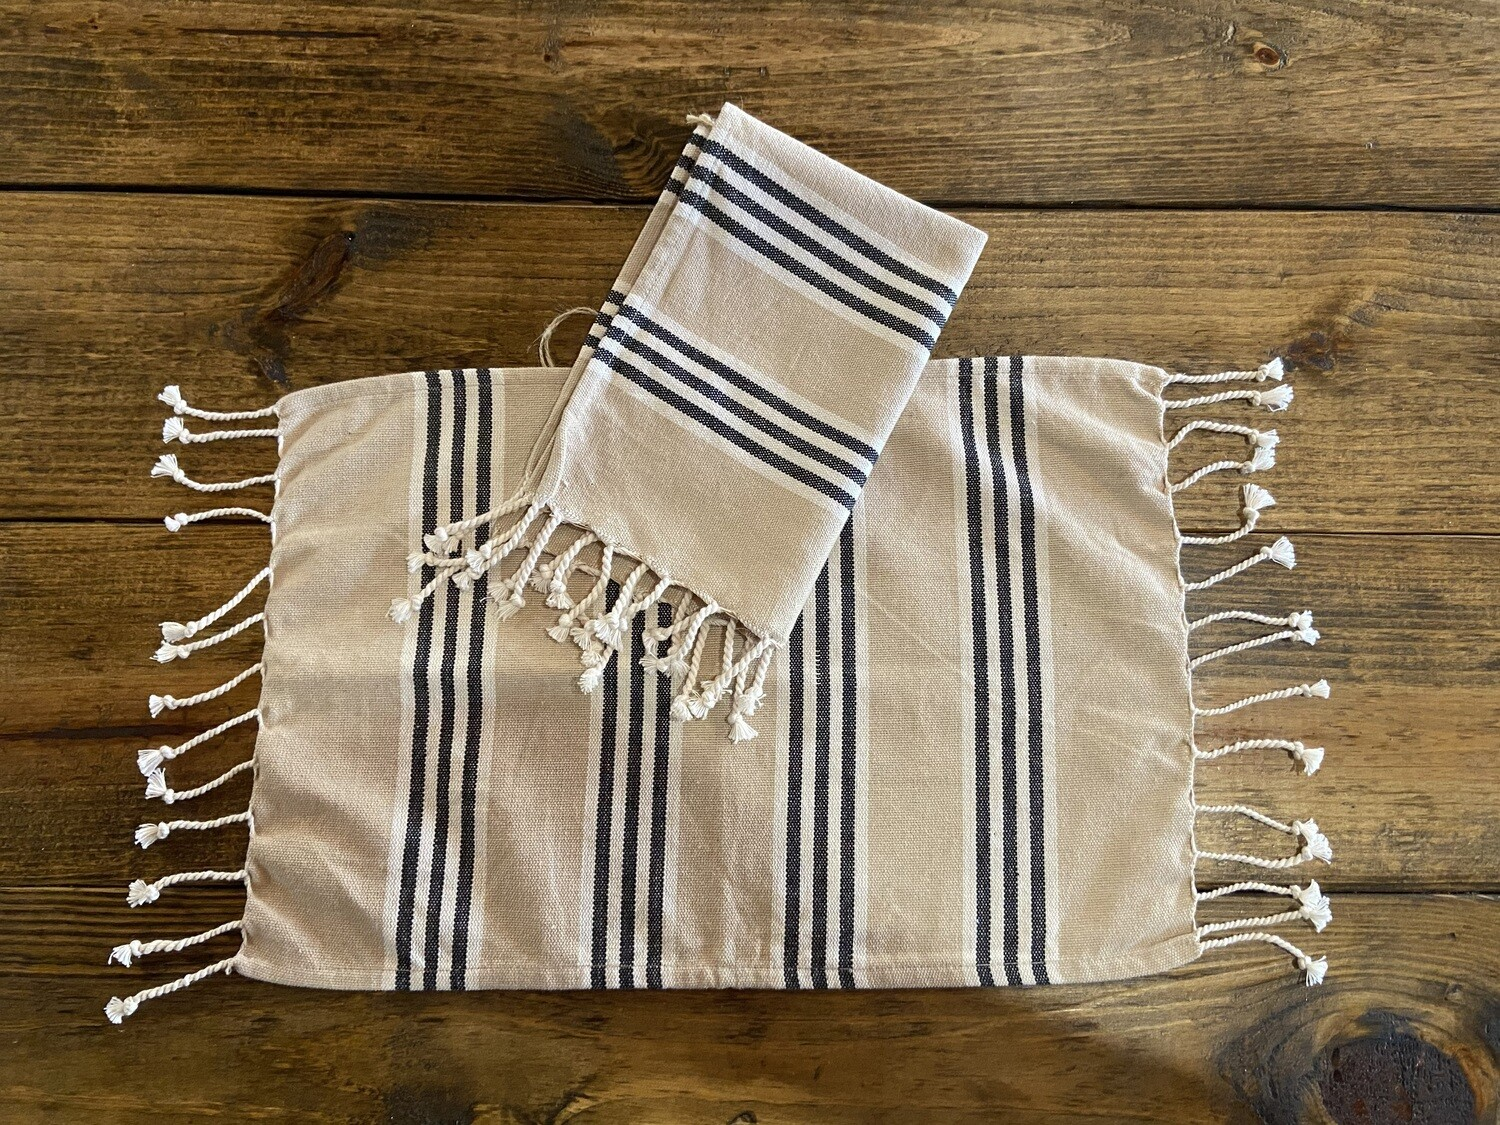 Tan with Black Striped Tassel Place mats